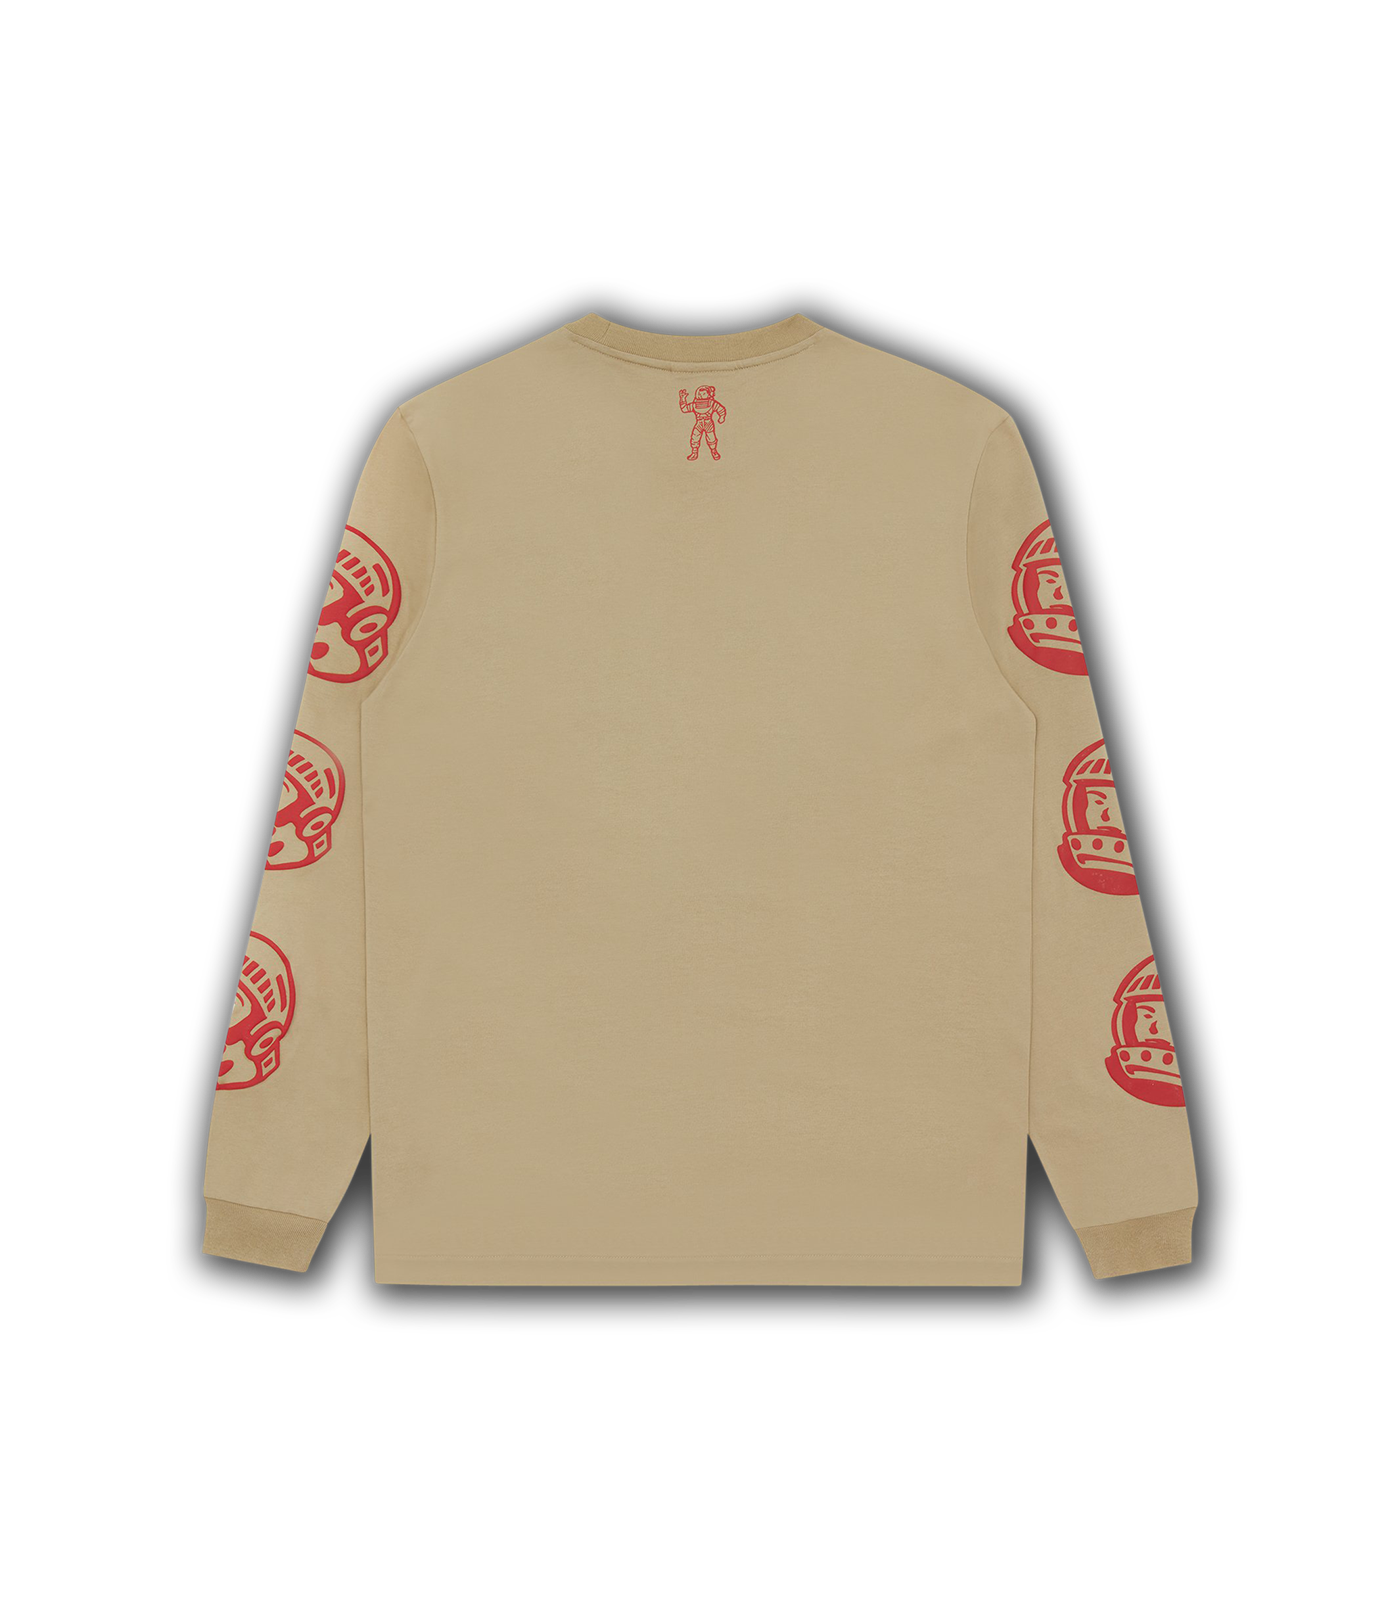 ASTRO REPEAT L/S T-SHIRT - SAND